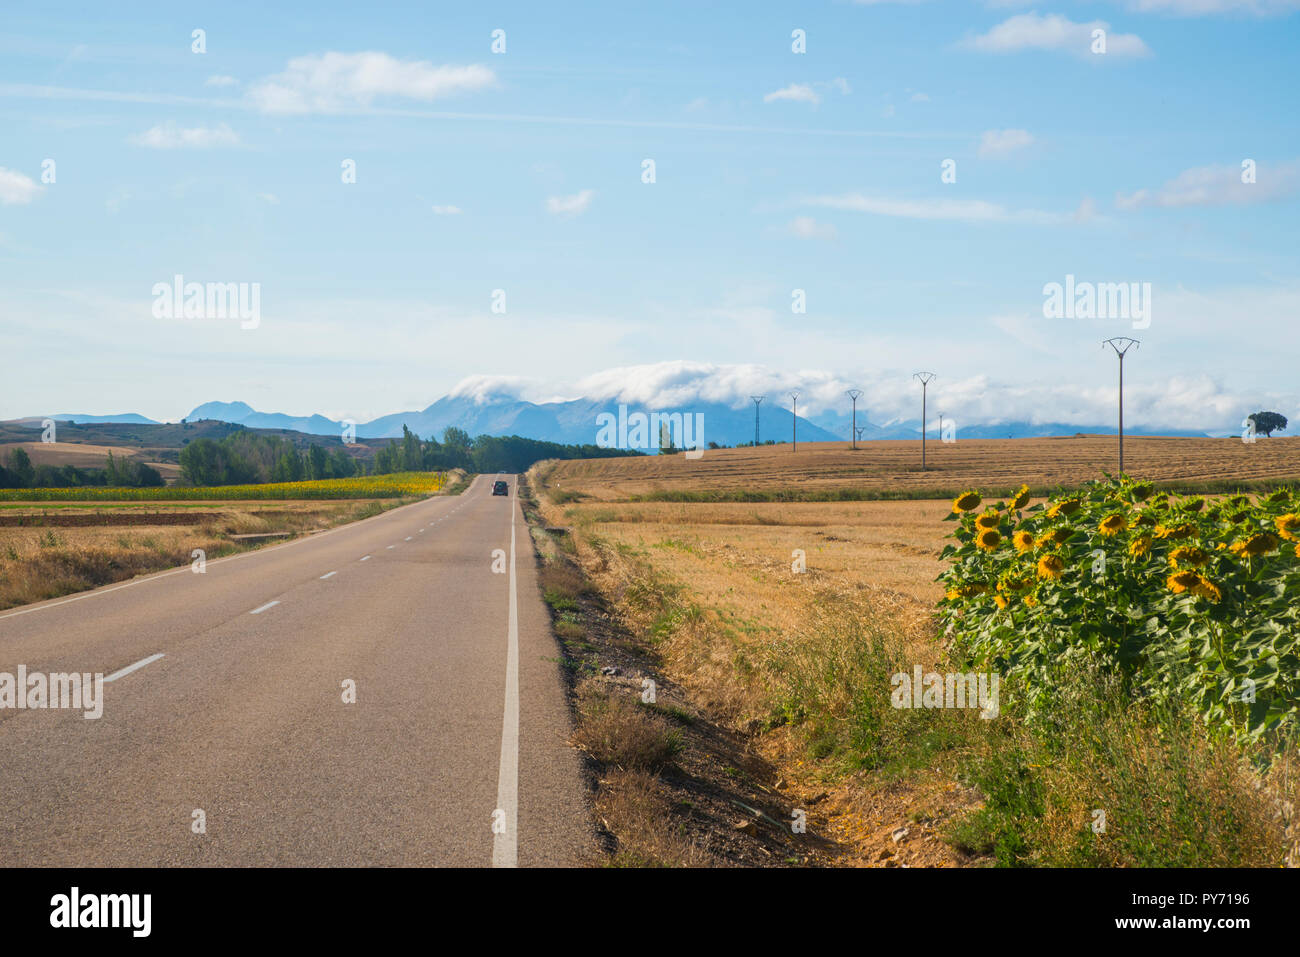 Byway and landscape. Palencia, Spain. Stock Photo